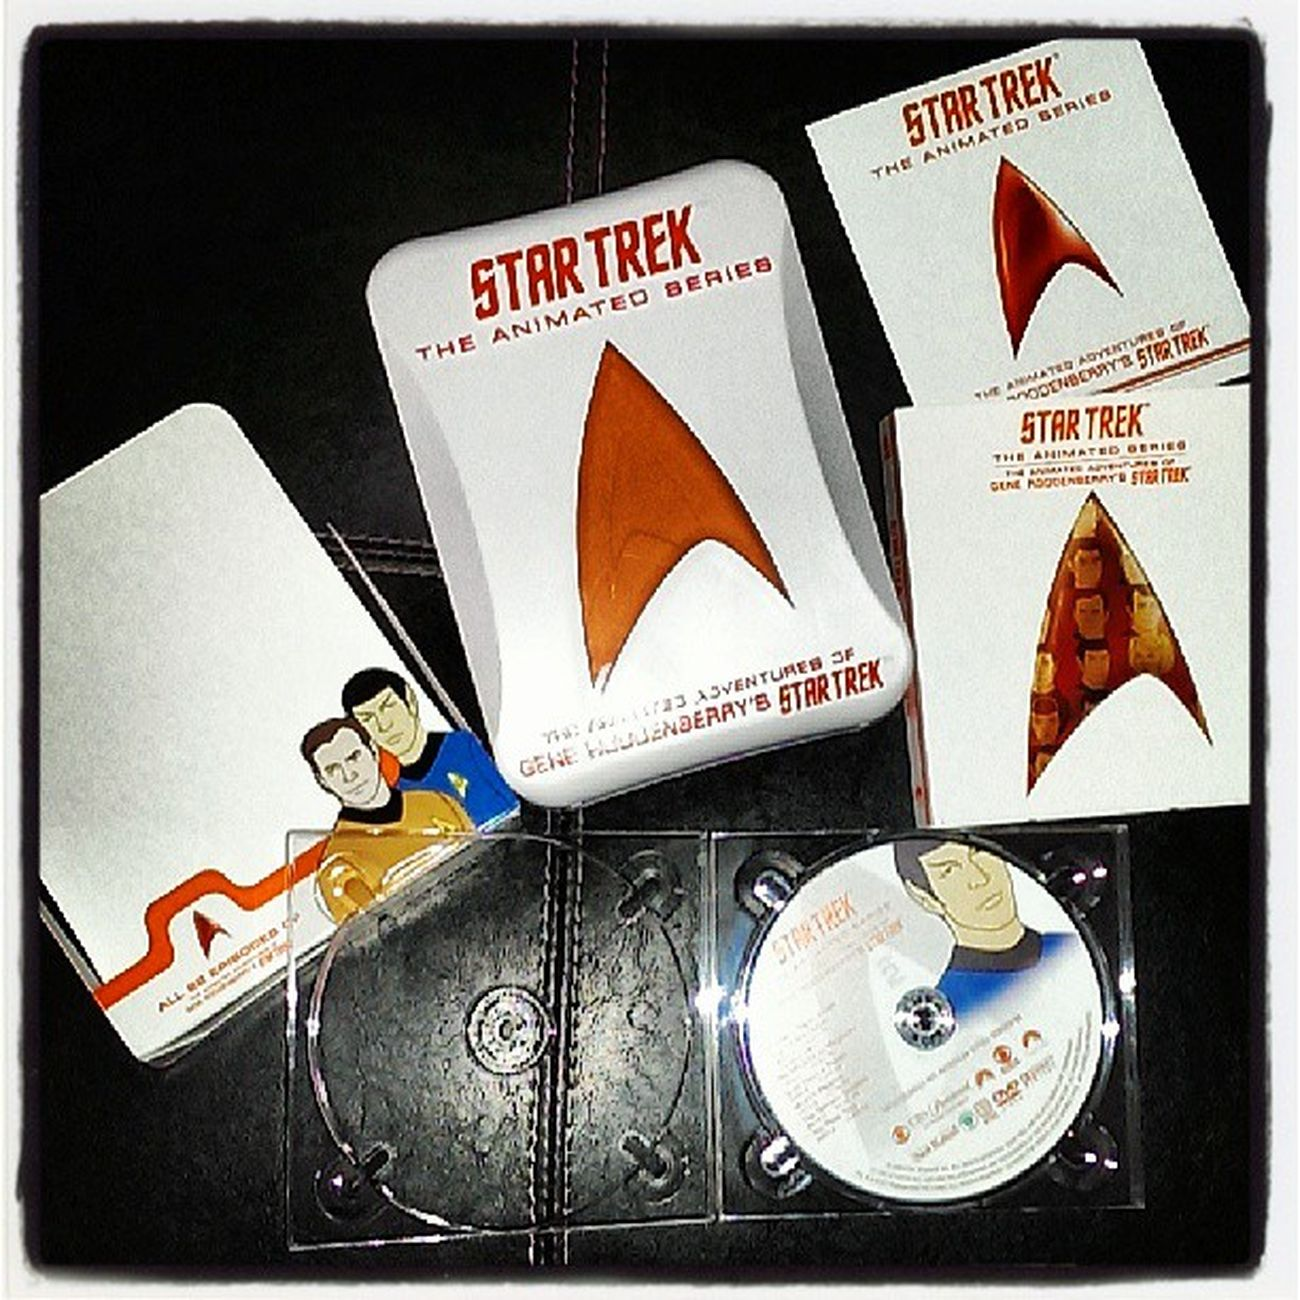 Omg! I found my favorite Cartoon when I was a kid :) Startrek Animated Series Loveit brings back memories of waking up early Saturday mornings... Lol